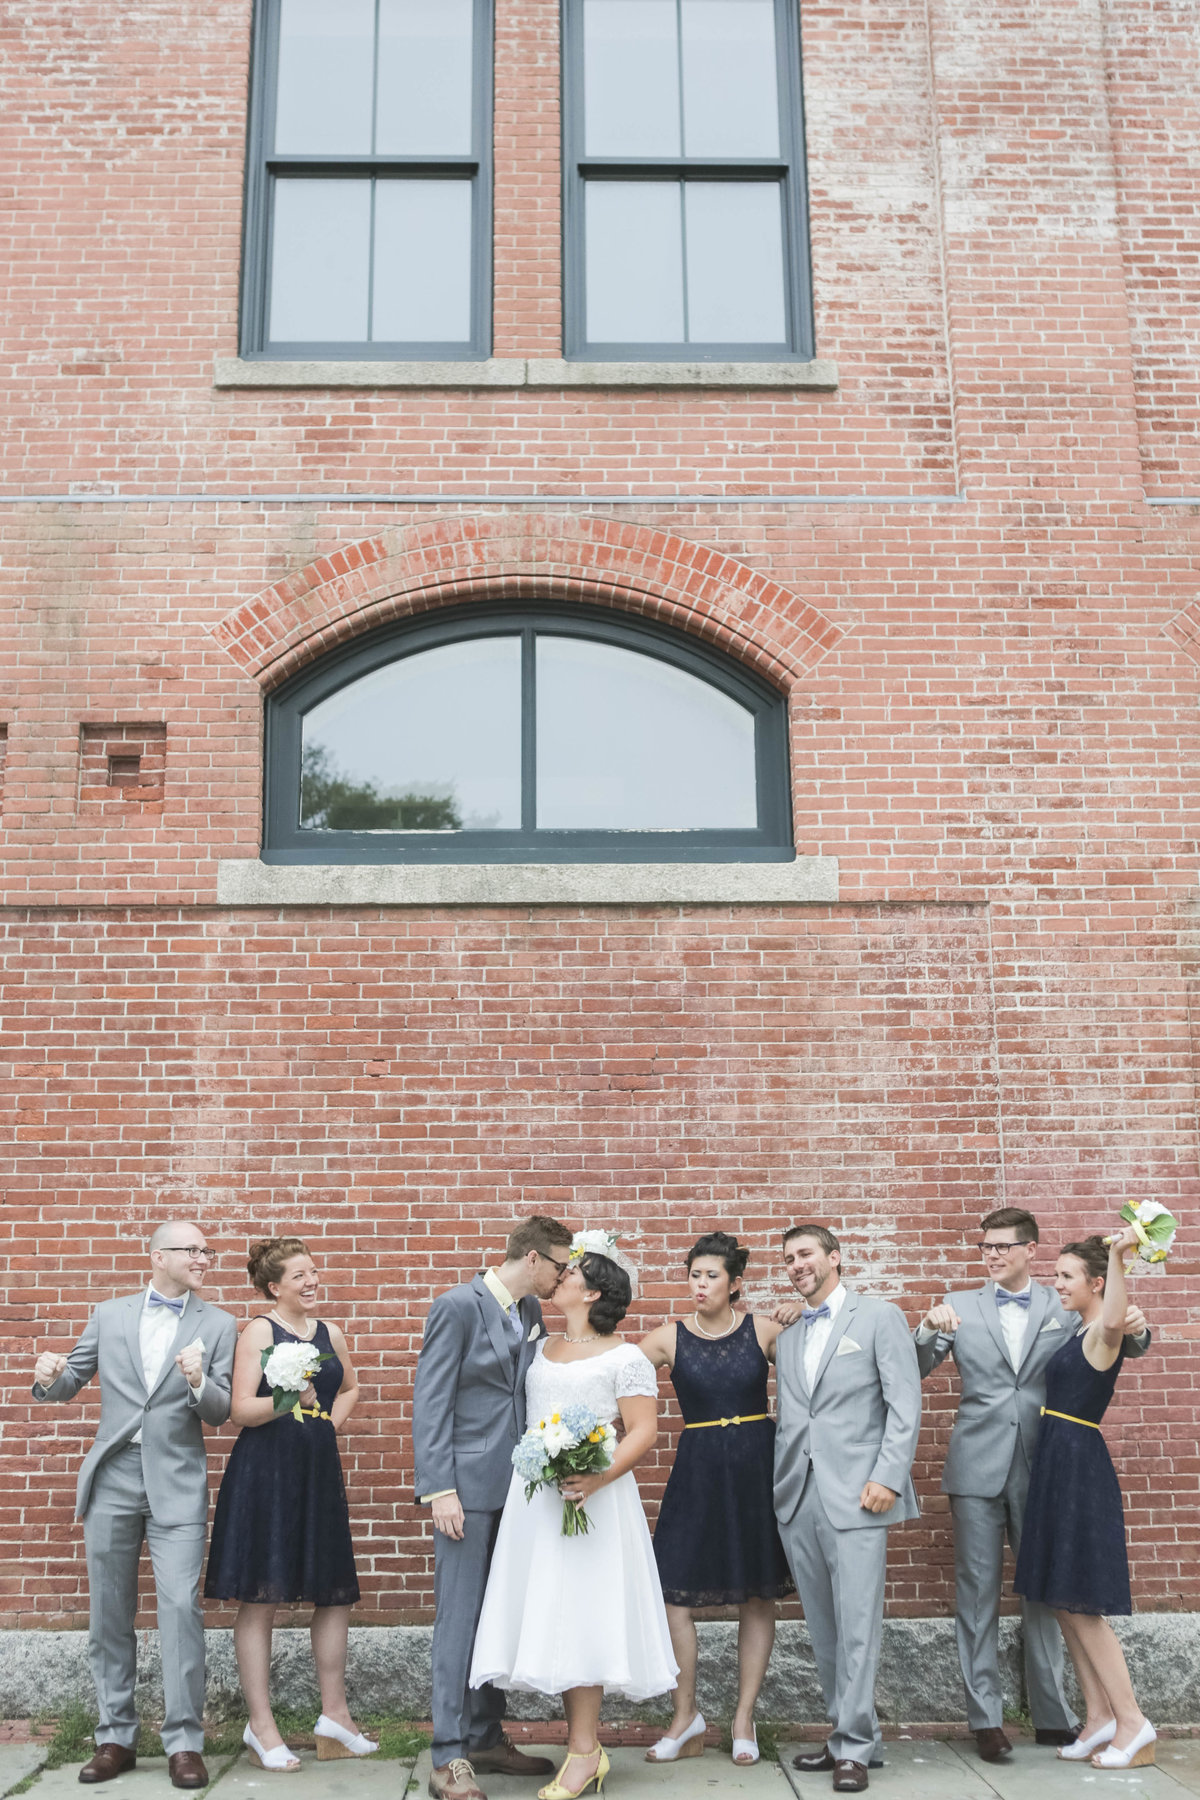 new_bedford_whaling_museum_wedding_boston_wedding_photographerGideon3month20150822ir-4O6A9893165242